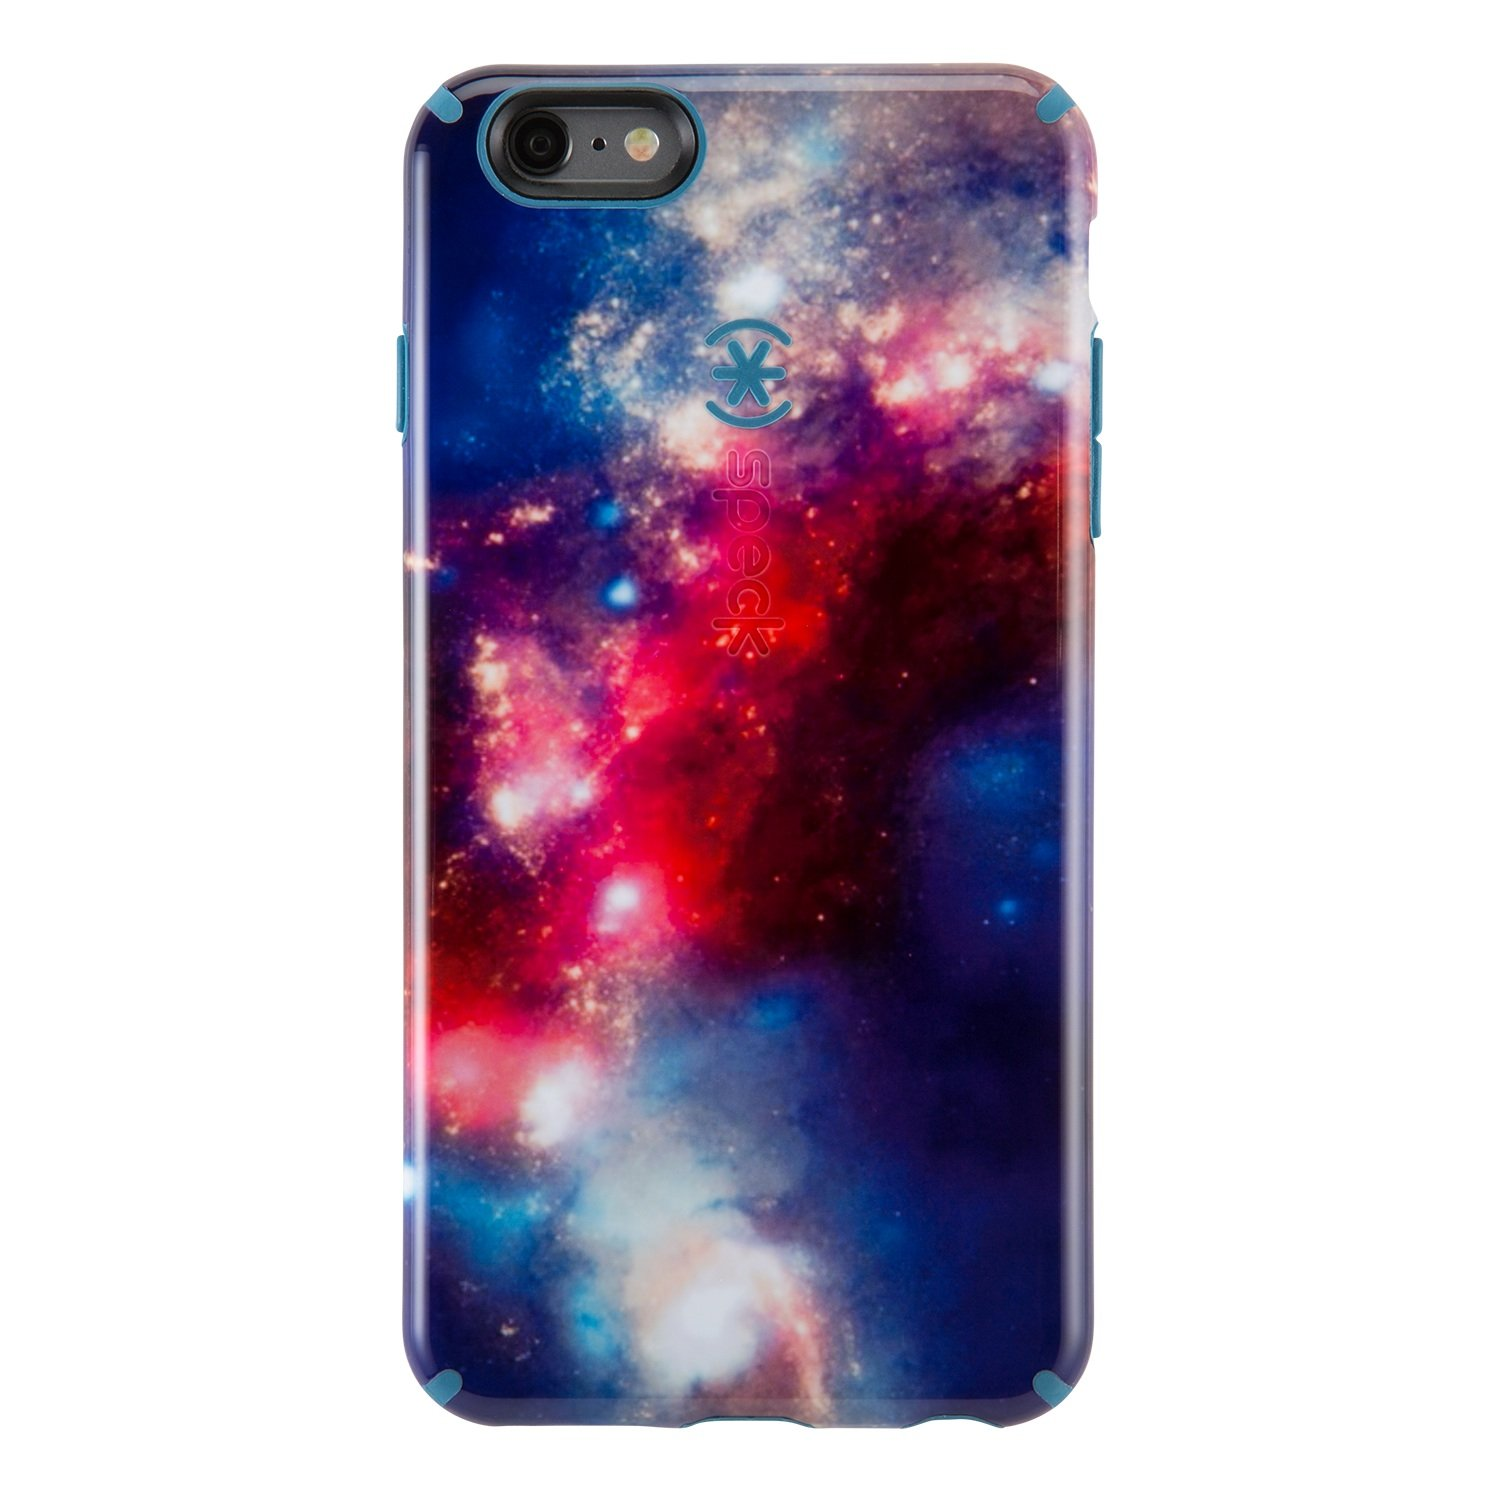 Speck Iphone  Plus Case Amazon